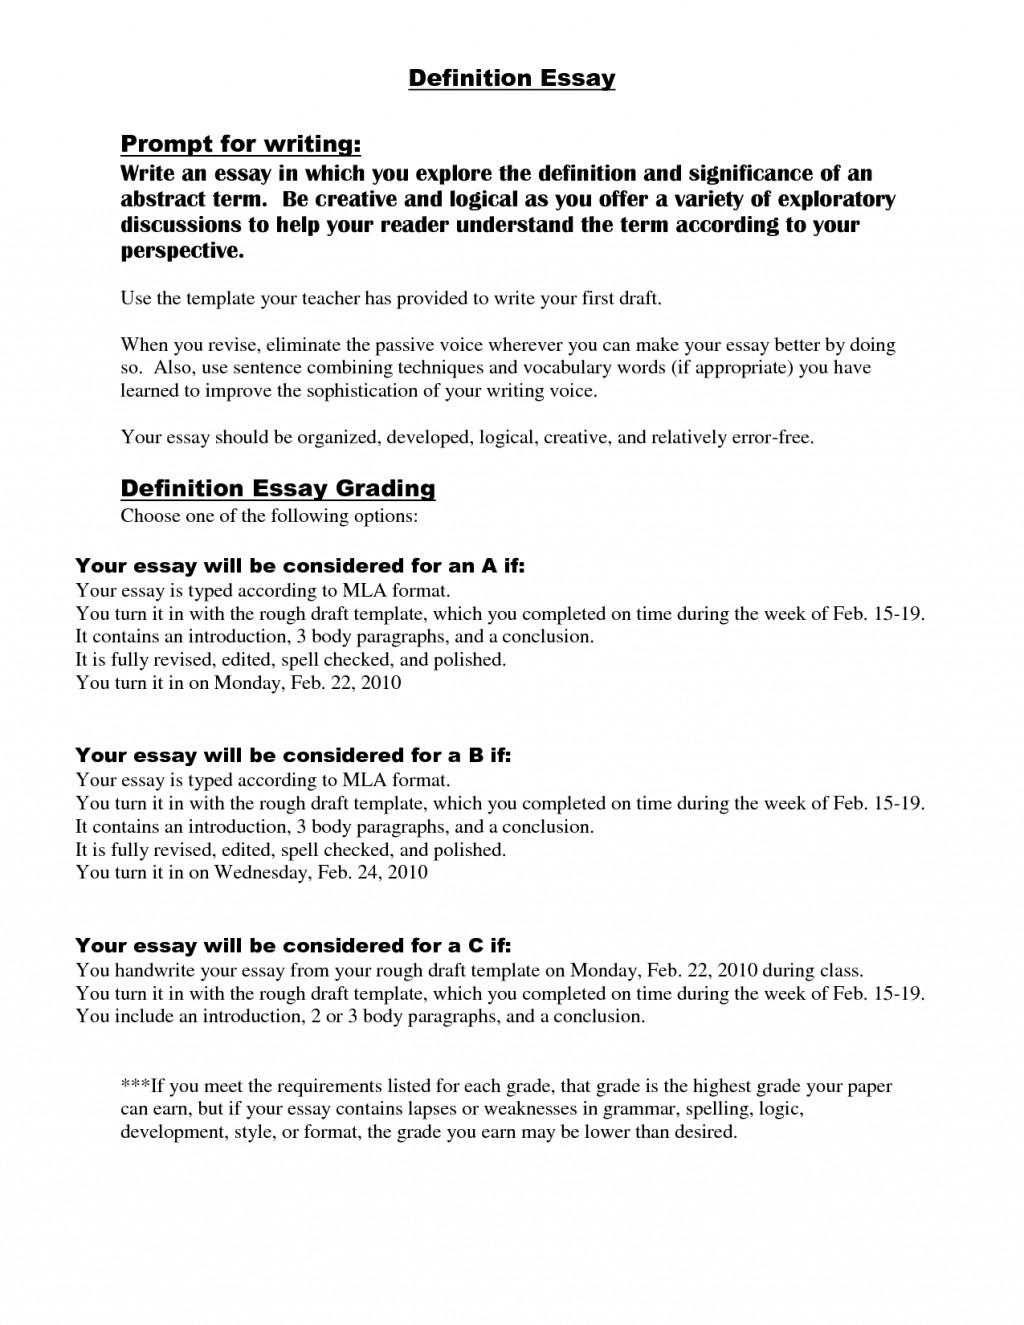 009 Essay Example Ideas Of Cover Letter Writing Definition Examples Great Outline Ib Striking Topics List For College Students Large